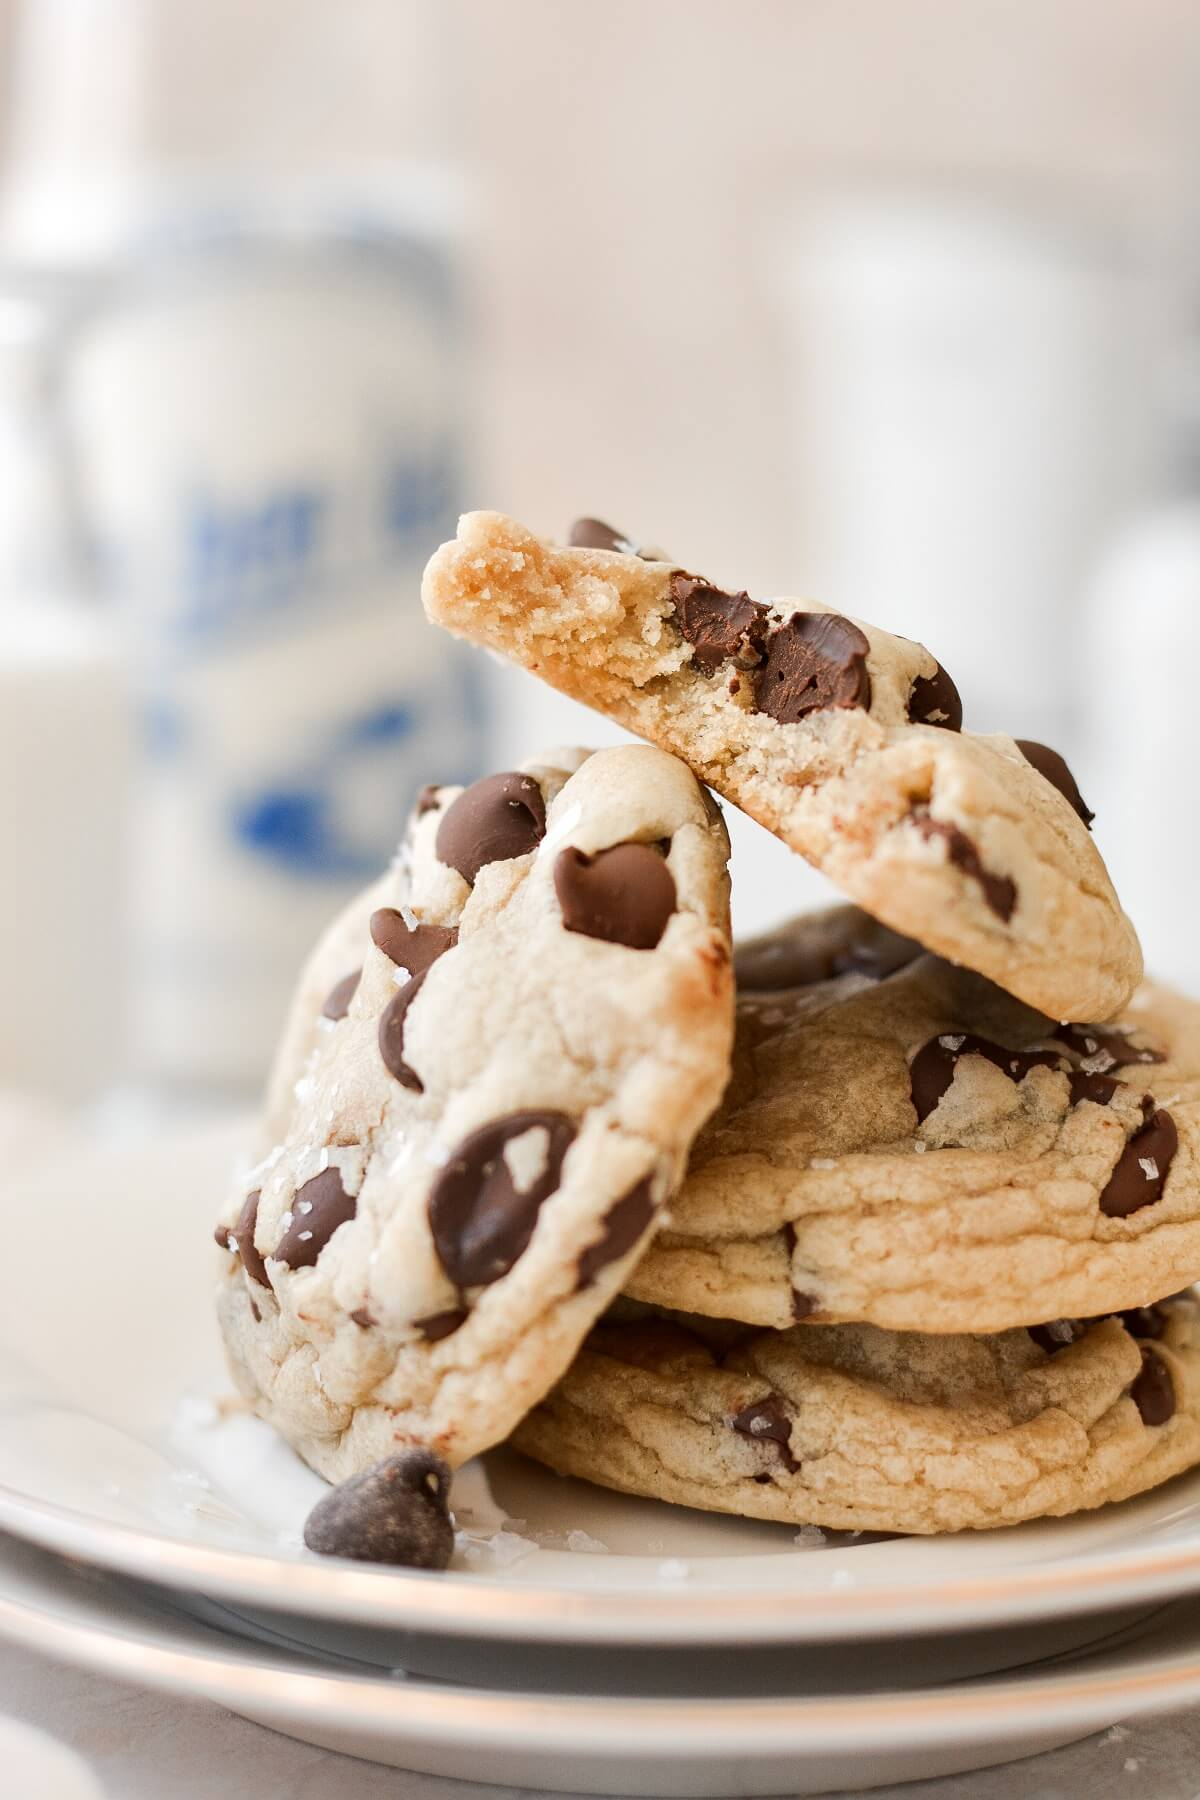 A stack of chocolate chip cookies, one with a bite taken out.